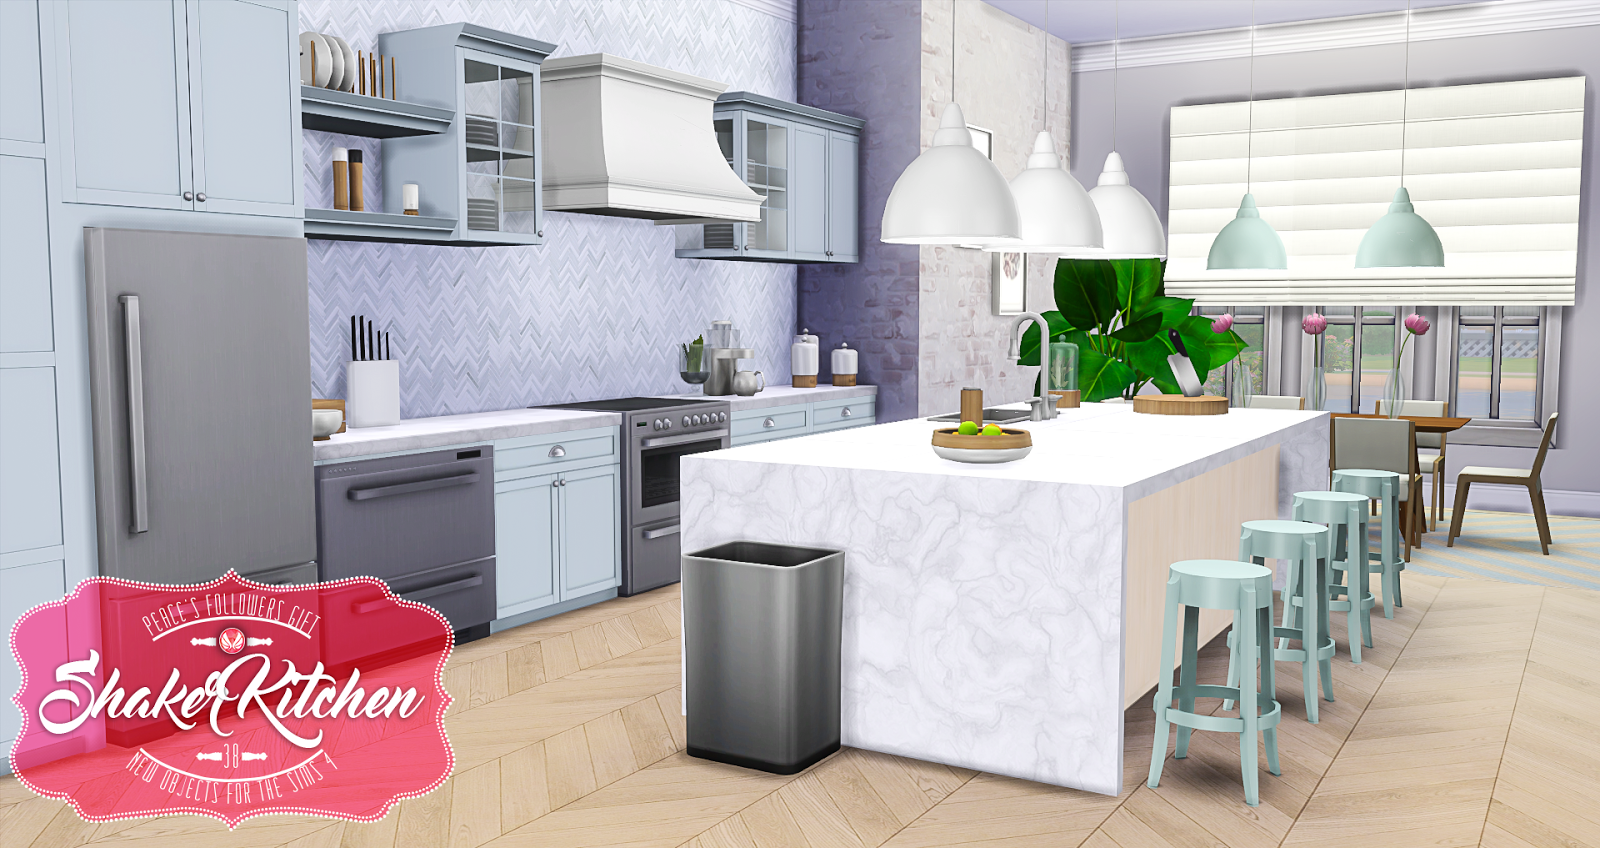 Simsational Designs: Shaker Kitchen